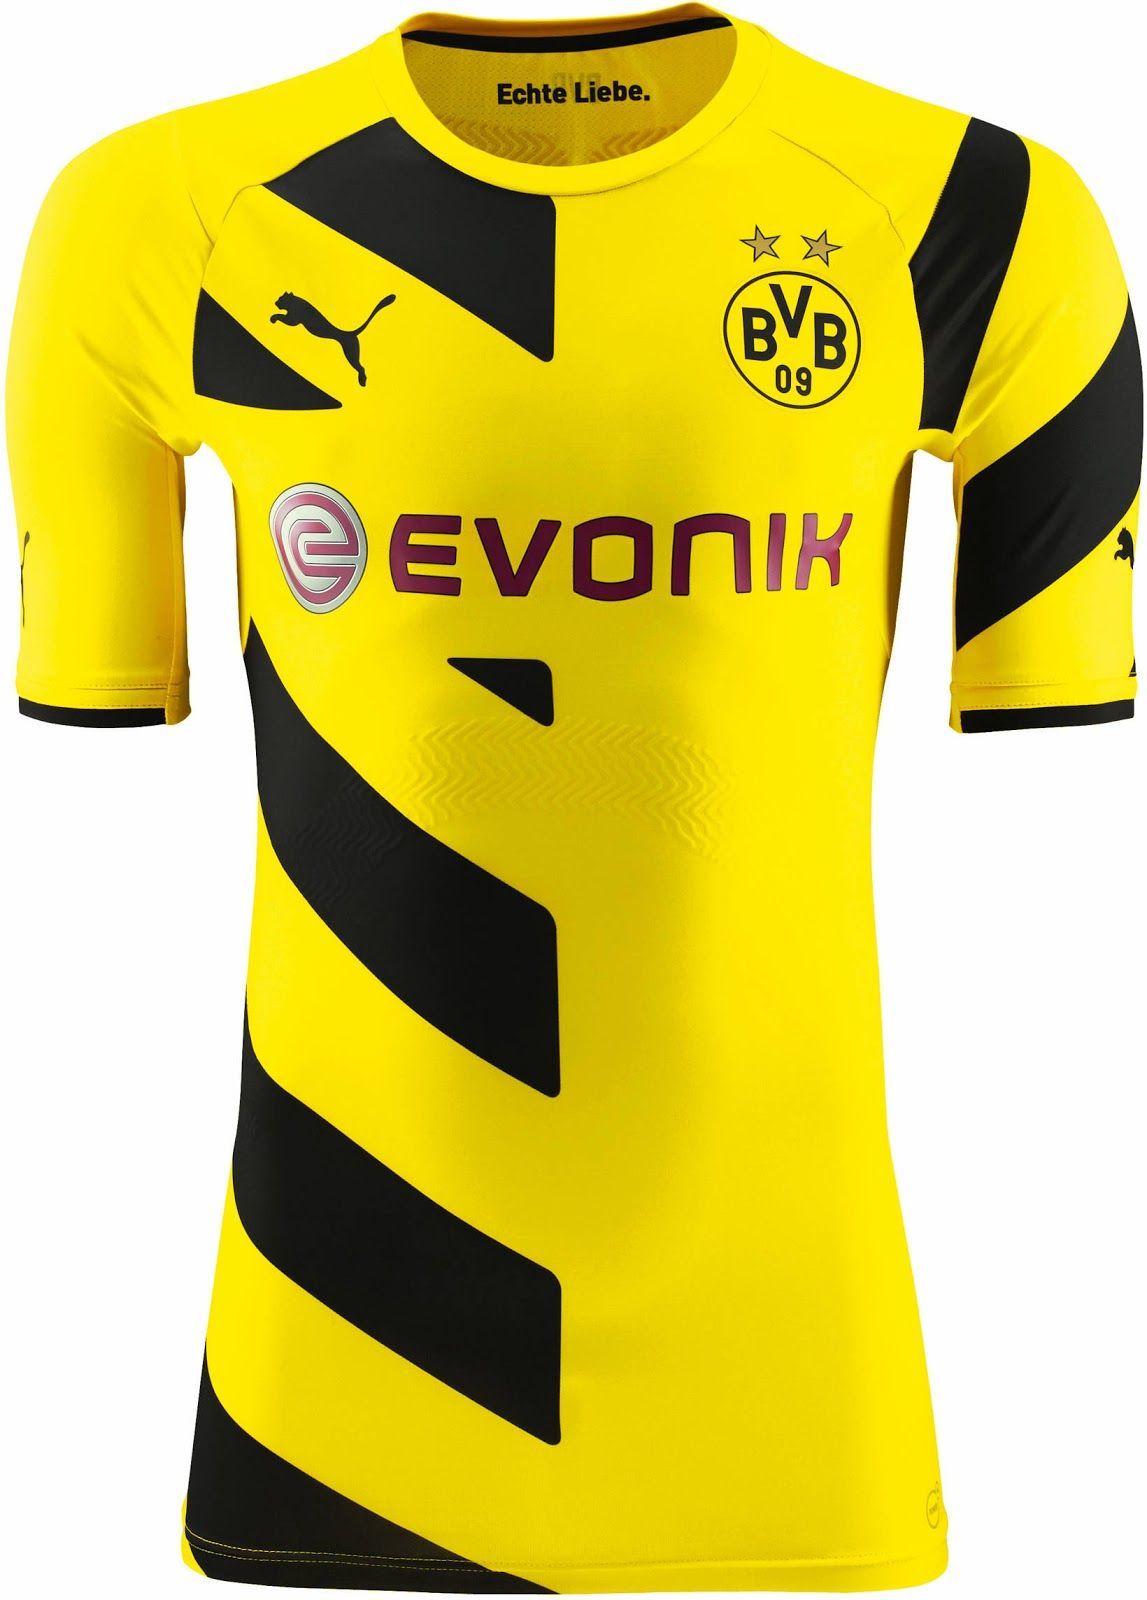 Borussia Dortmund Home and Away Kits released - the new Borussia Dortmund  Home Shirt is yellow and features a bold front and sleeve design. The black  ...